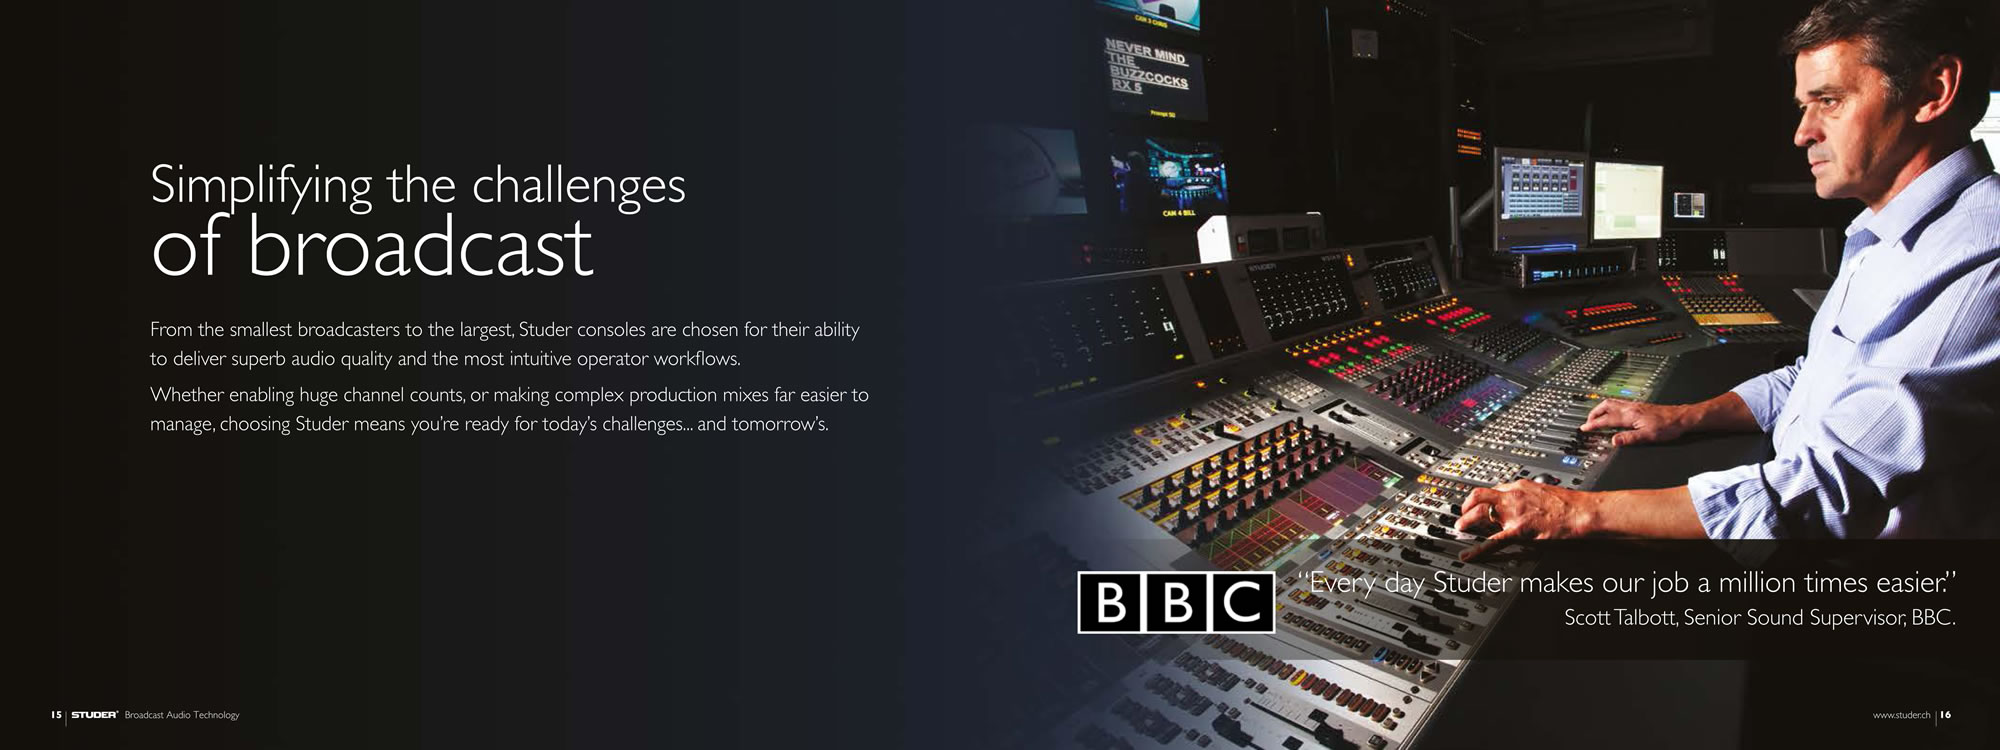 Simplifying the challenges of broadcast